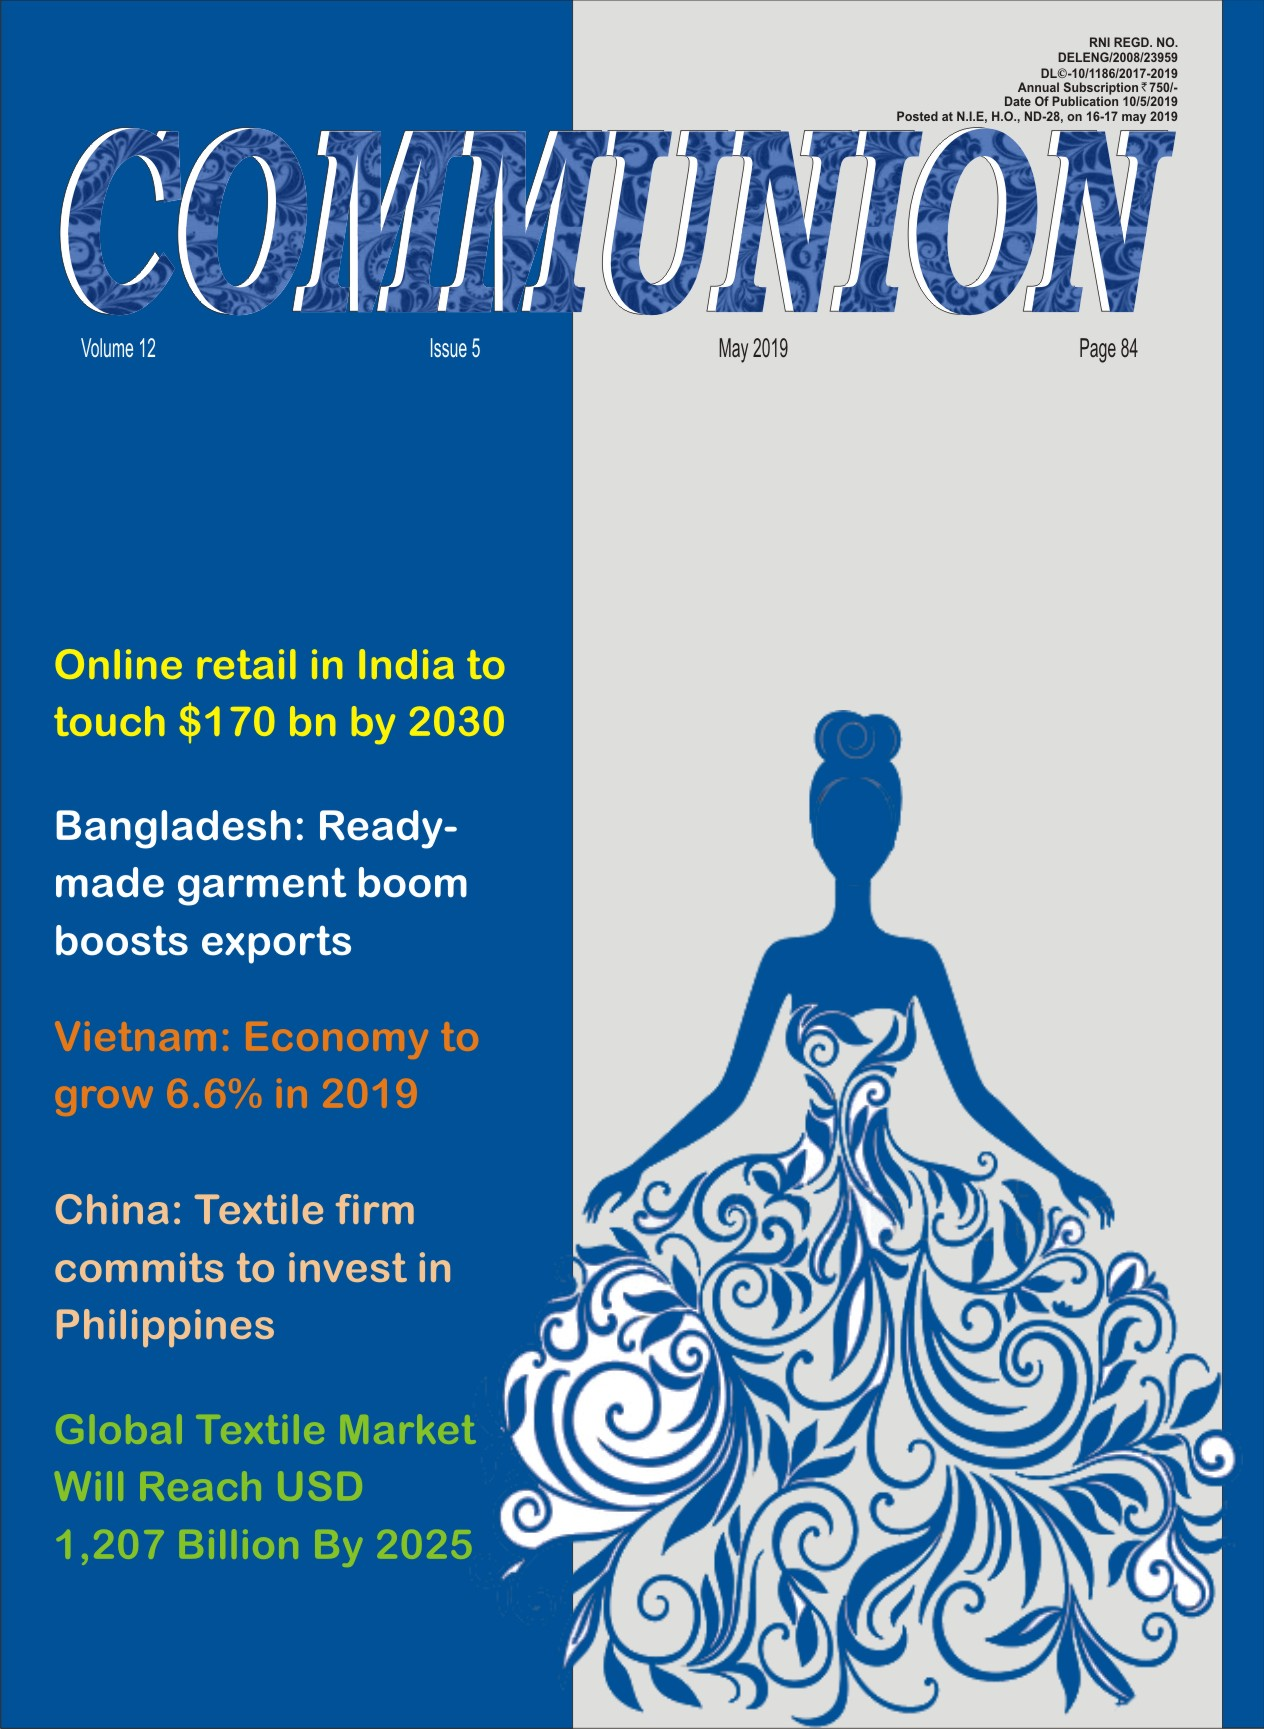 A LEADING PUBLICATION FOR GARMENT AND TEXTILE INDUSTRY